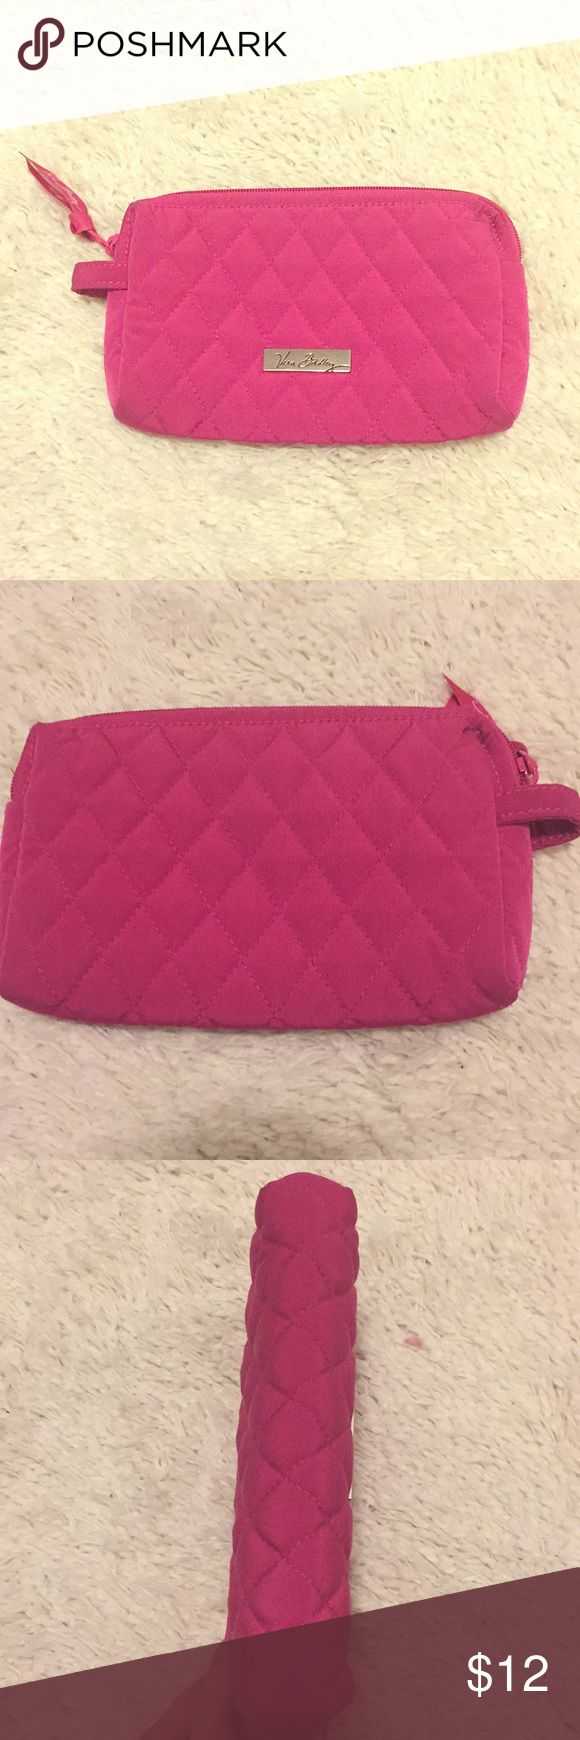 Vera Bradley Small Cosmetic Bag Quilted small Cosmetic Bag, perfect for a purse! Never really used in excellent condition, no stains or spots. Vera Bradley Bags Cosmetic Bags & Cases